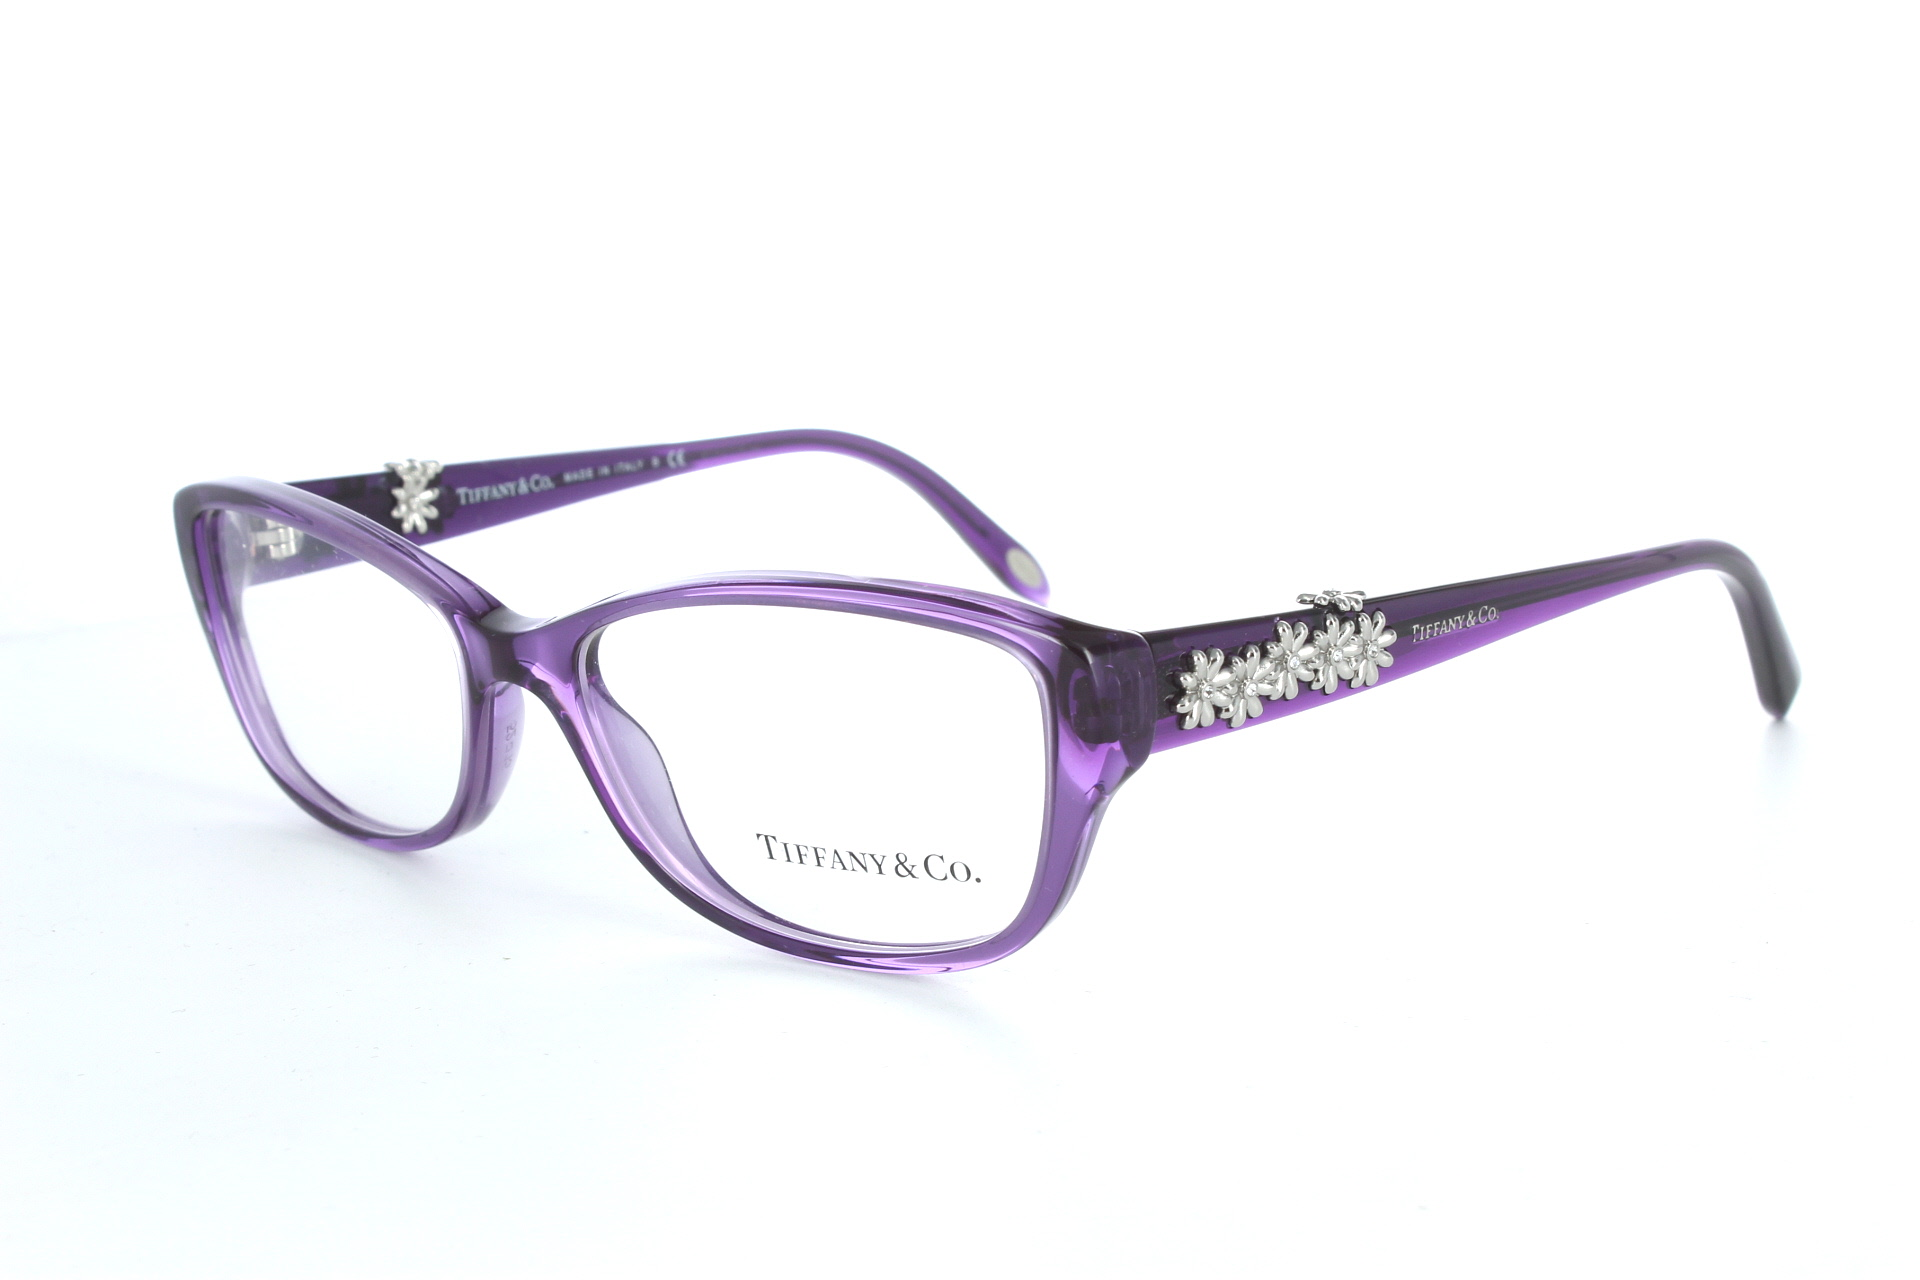 Tiffany Designer Eyeglass Frames : Tiffany & Co TF 2068B Tiffany & Co Designer Glasses